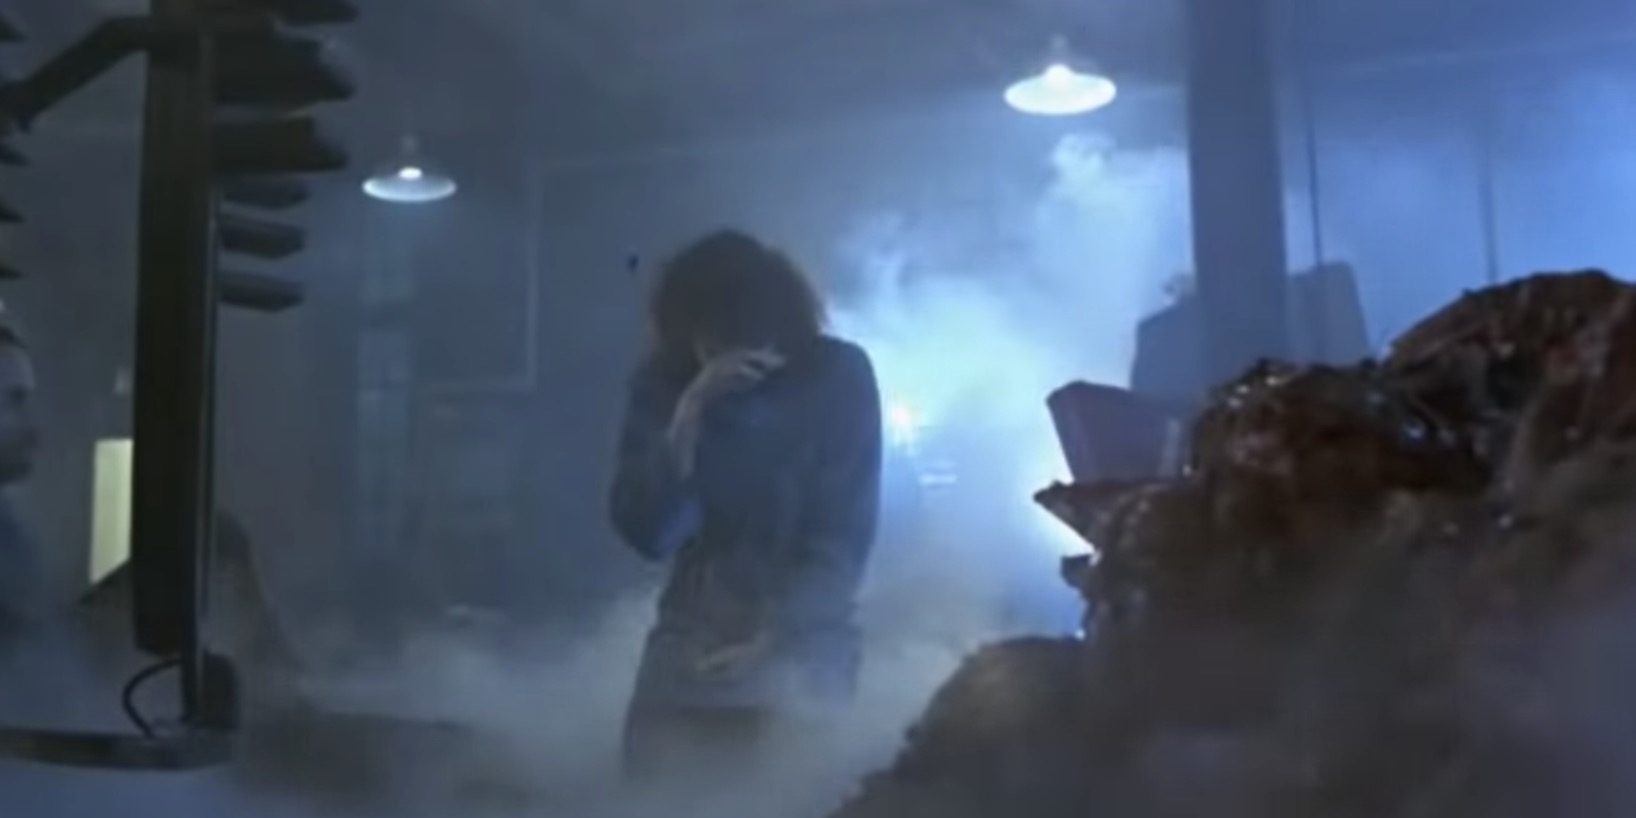 sci-fi movie end scene, movies, The Fly